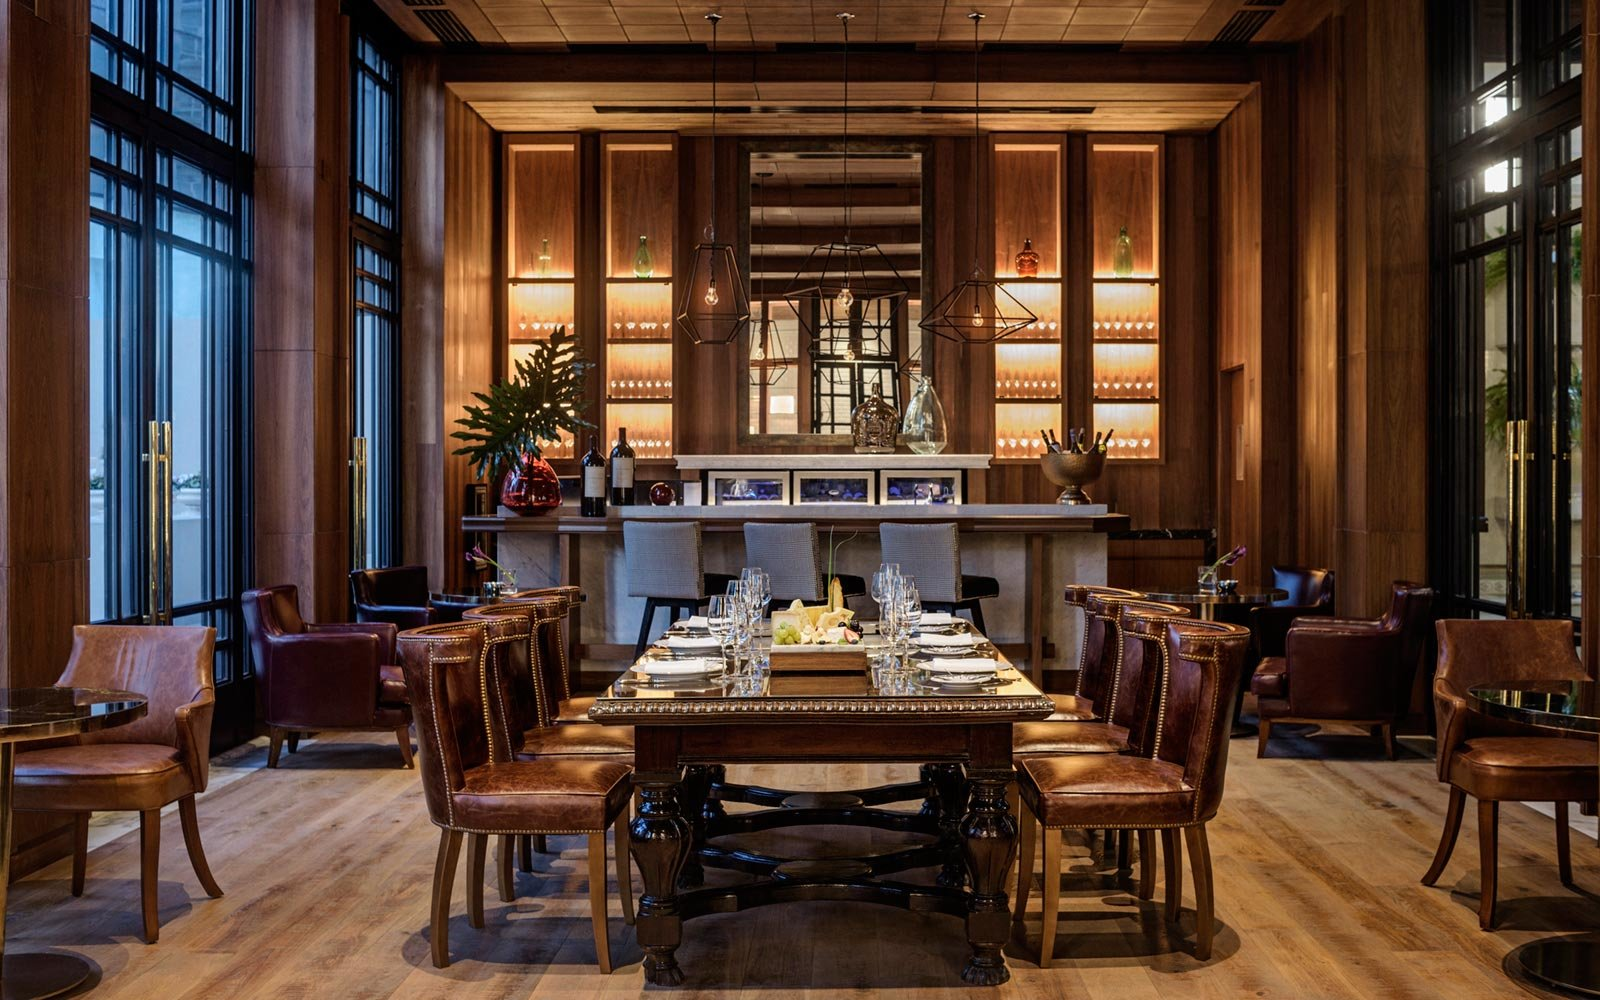 The Best New Hotels In World It List 2018 Travel Leisure Dont Miss Other Custom Furniture And Circuit Art Projects Alvear Icon Hotel